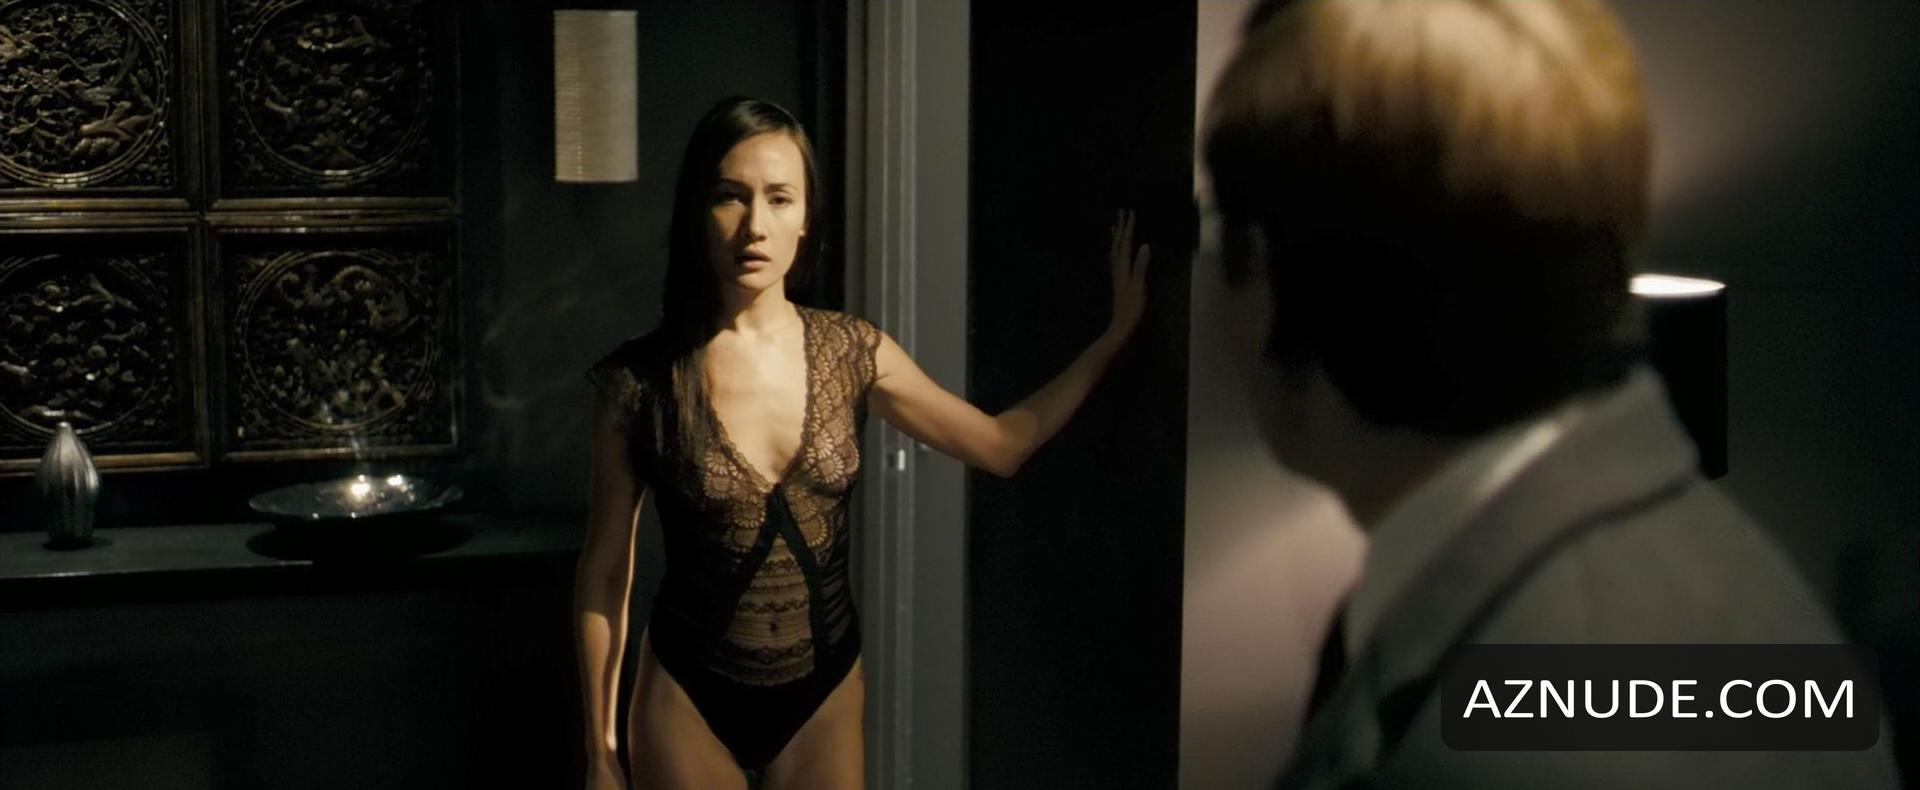 Maggie q sexy photos-9163